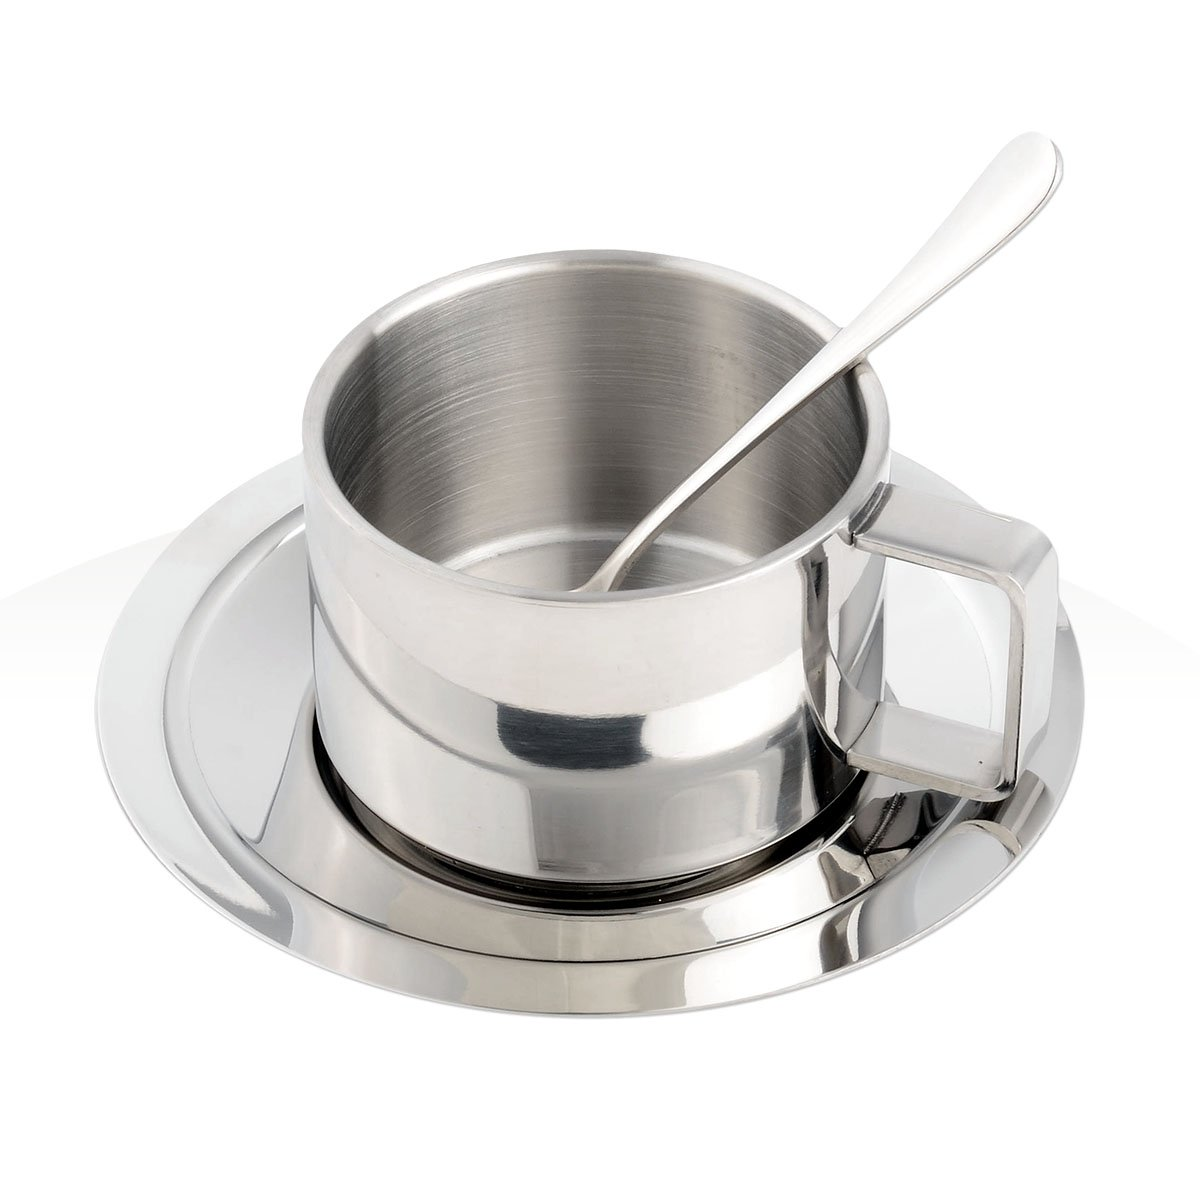 OUBORUI Stainless Steel Coffee Cup Set Coffee Mug Set with Stainless Steel Coffee Spoon and Plate